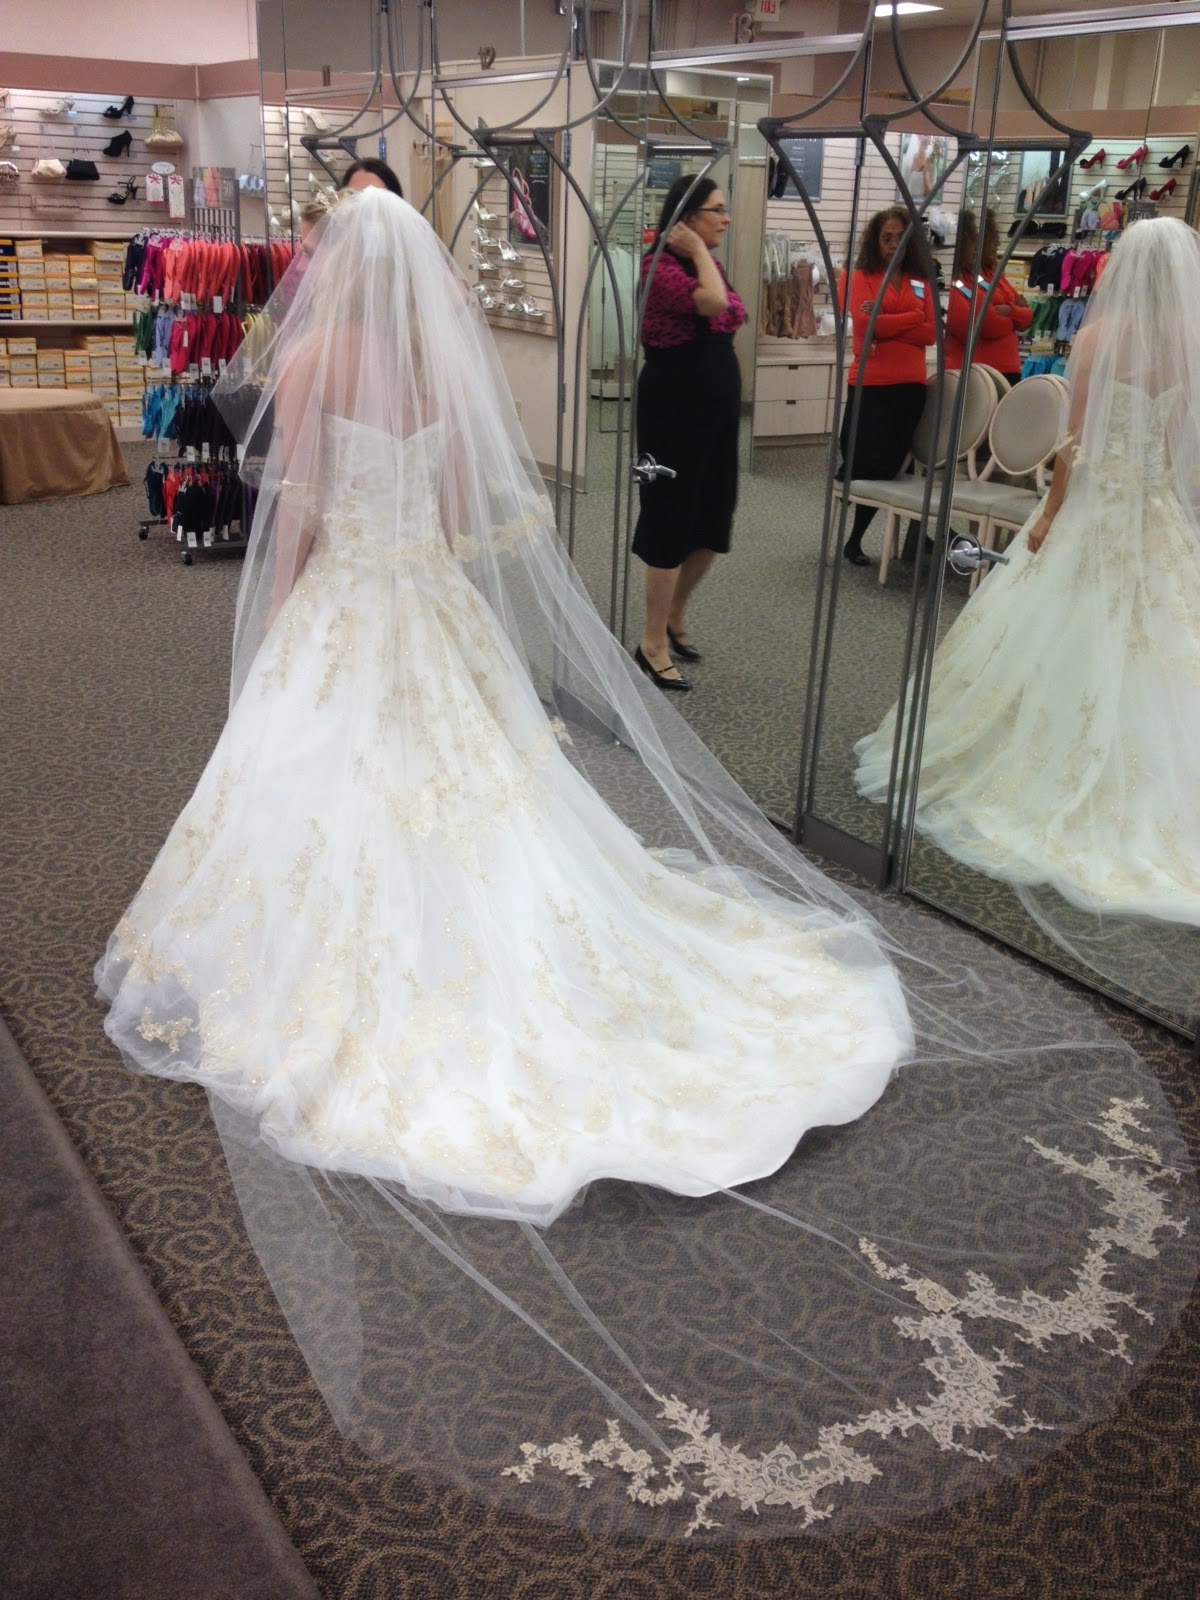 shopping for a wedding dress at David's bridal